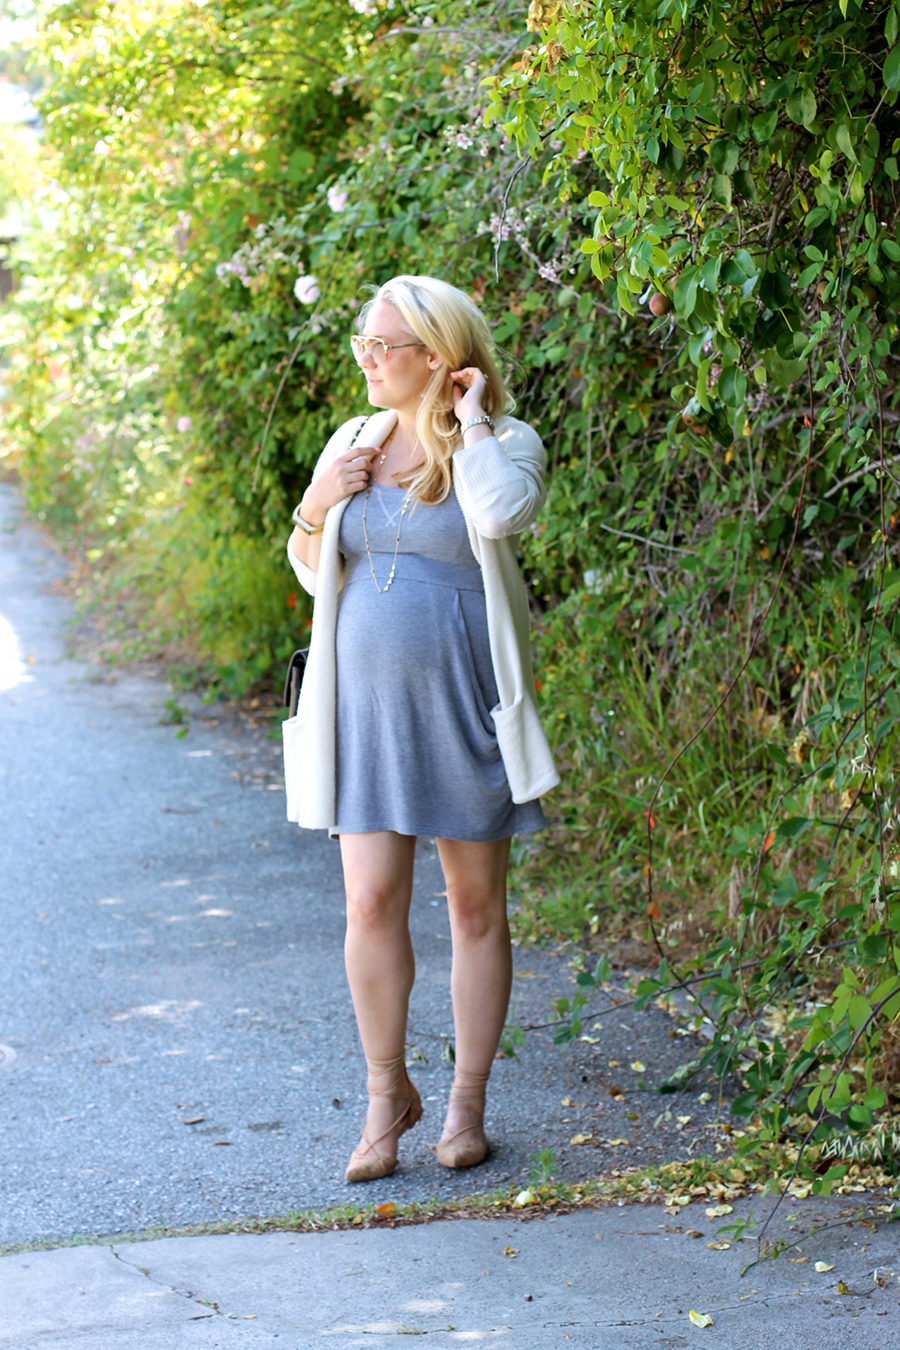 Grey Jersey Mini Dress-Maternity Style-Outfit Inspiration-Pregnancy Style-Have Need Want